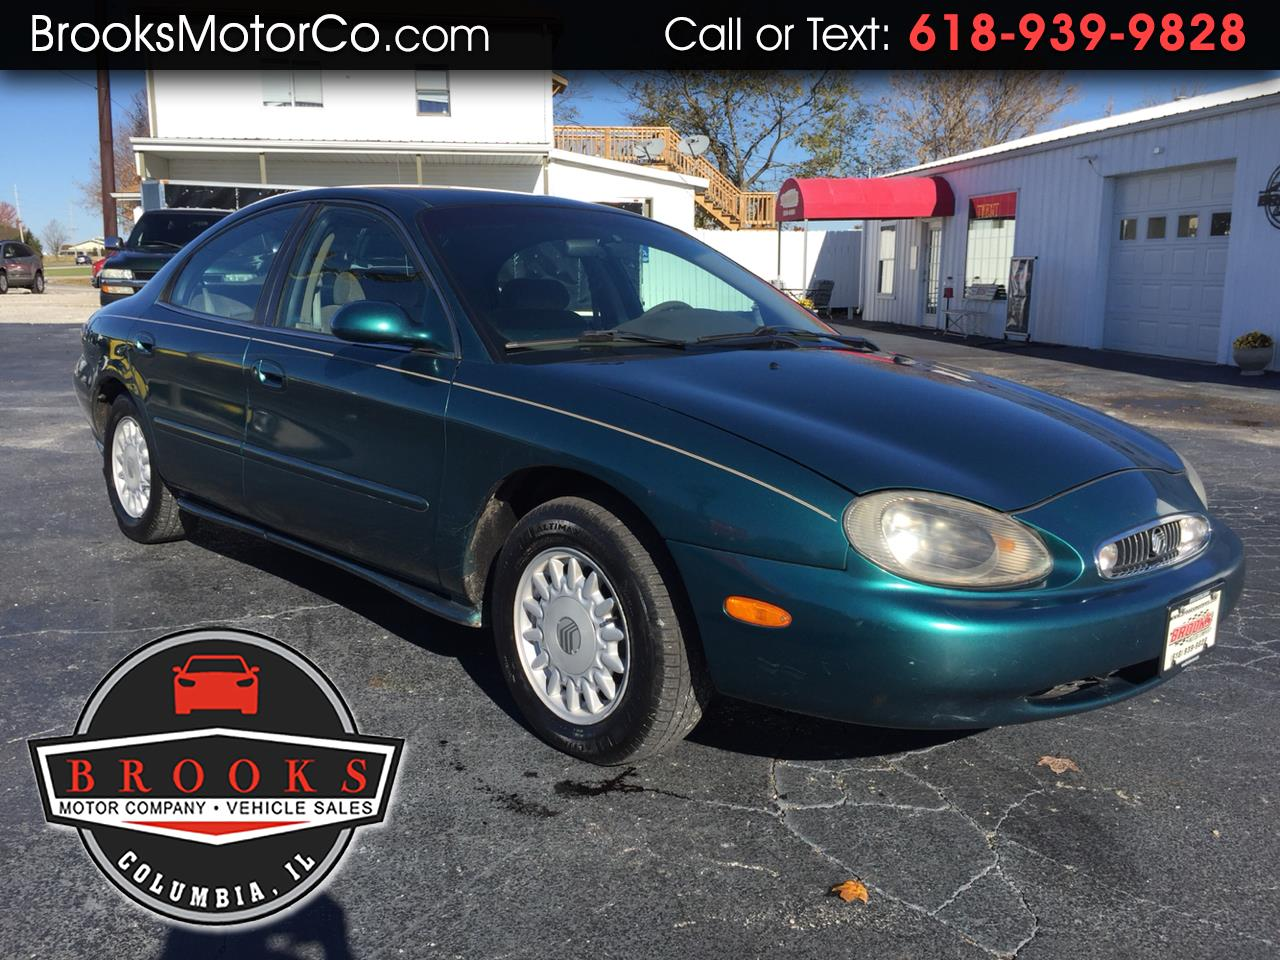 1998 Mercury Sable 4dr Sdn LS